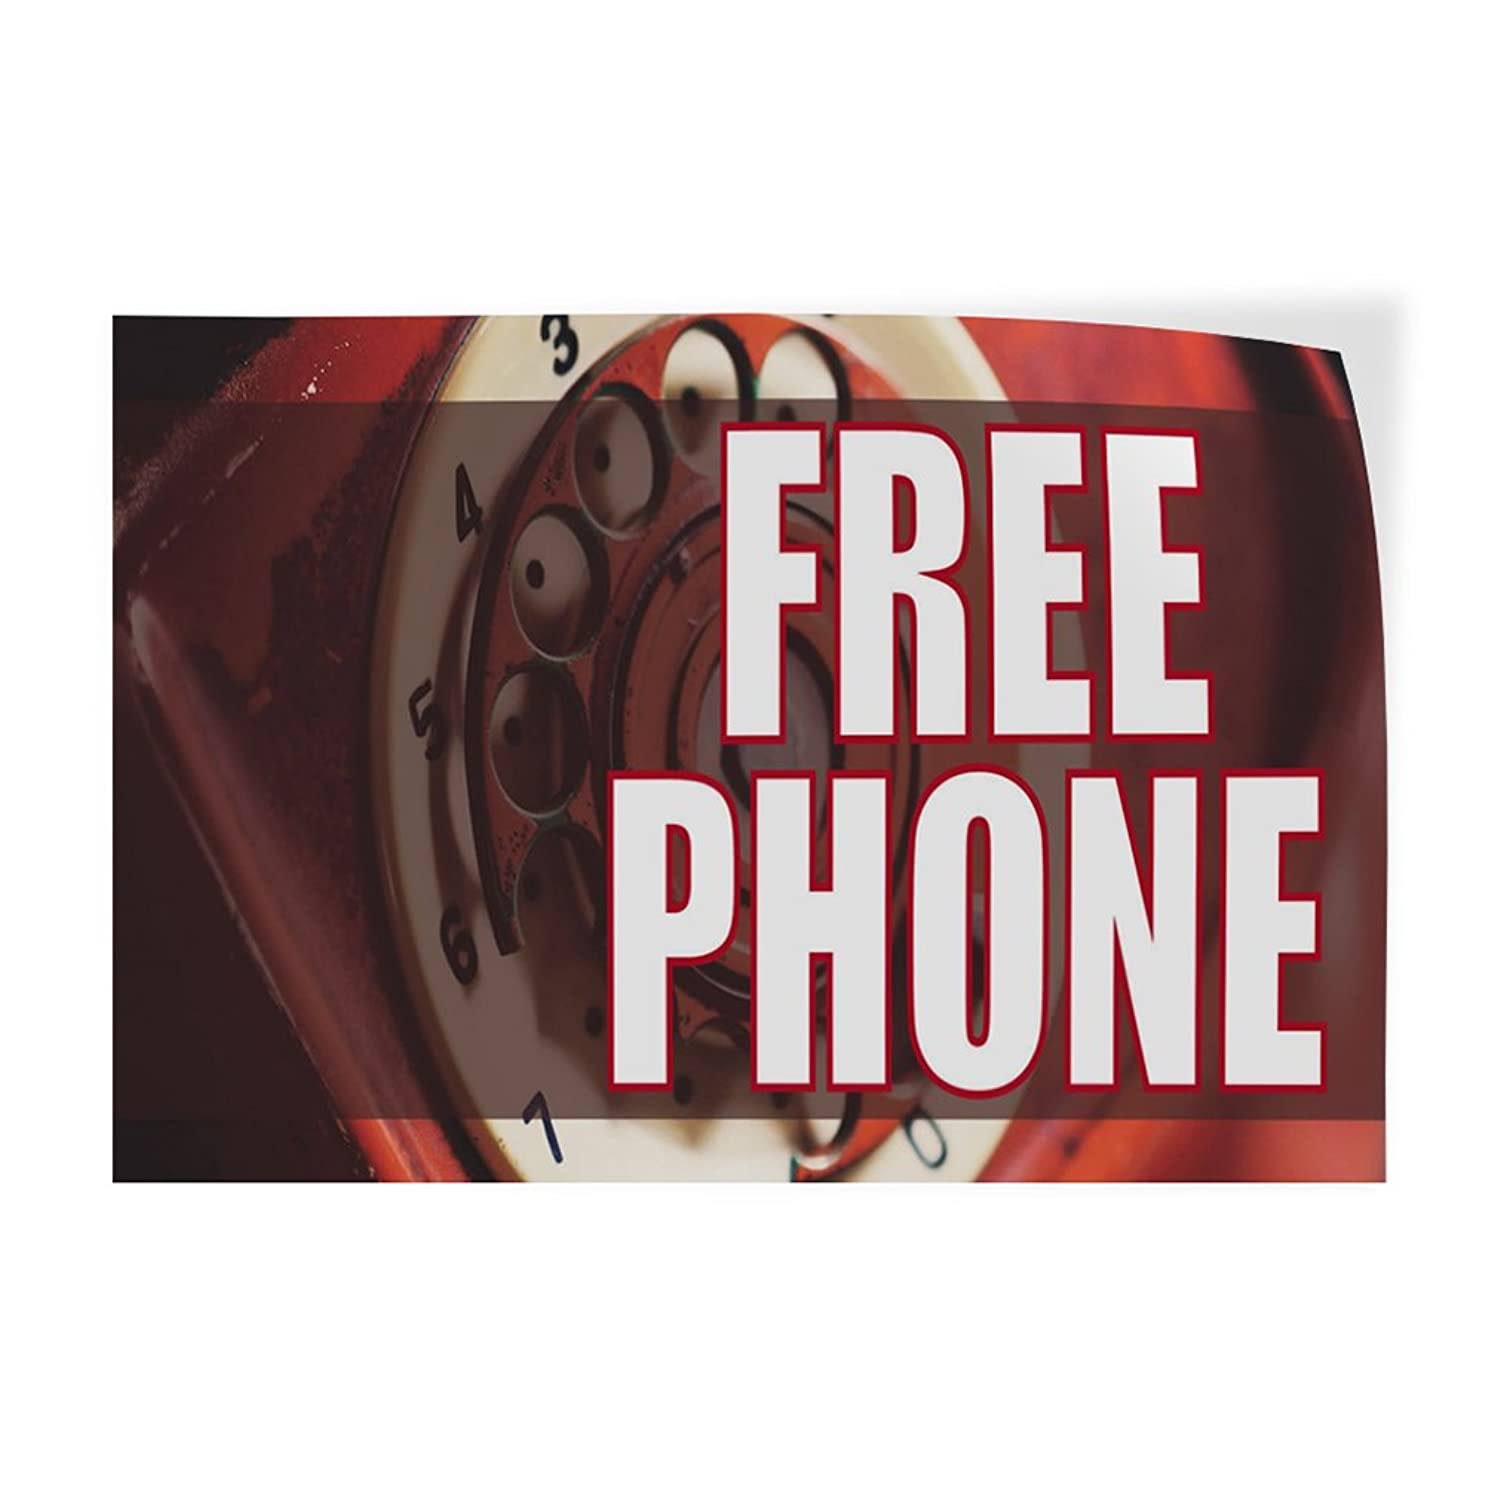 Decal Sticker Multiple Sizes Free Phone #8 Retail Free Phone Outdoor Store Sign White - 66inx44in, One Sticker